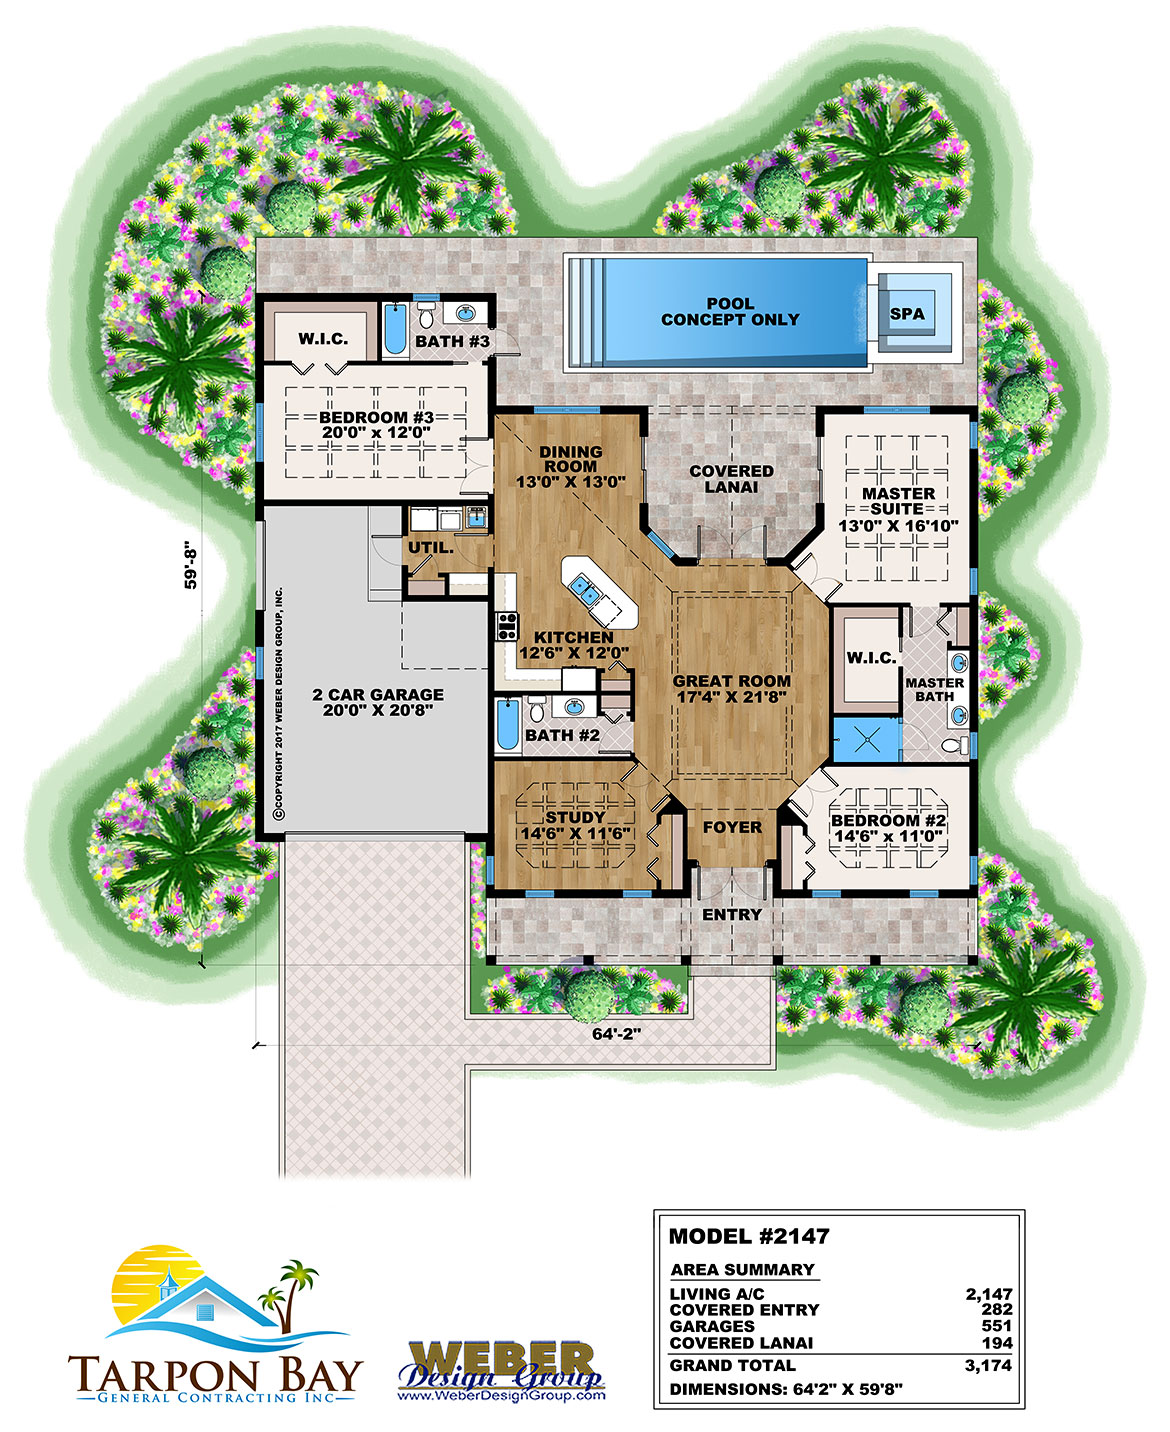 Home Model # 2147 Floor Plan